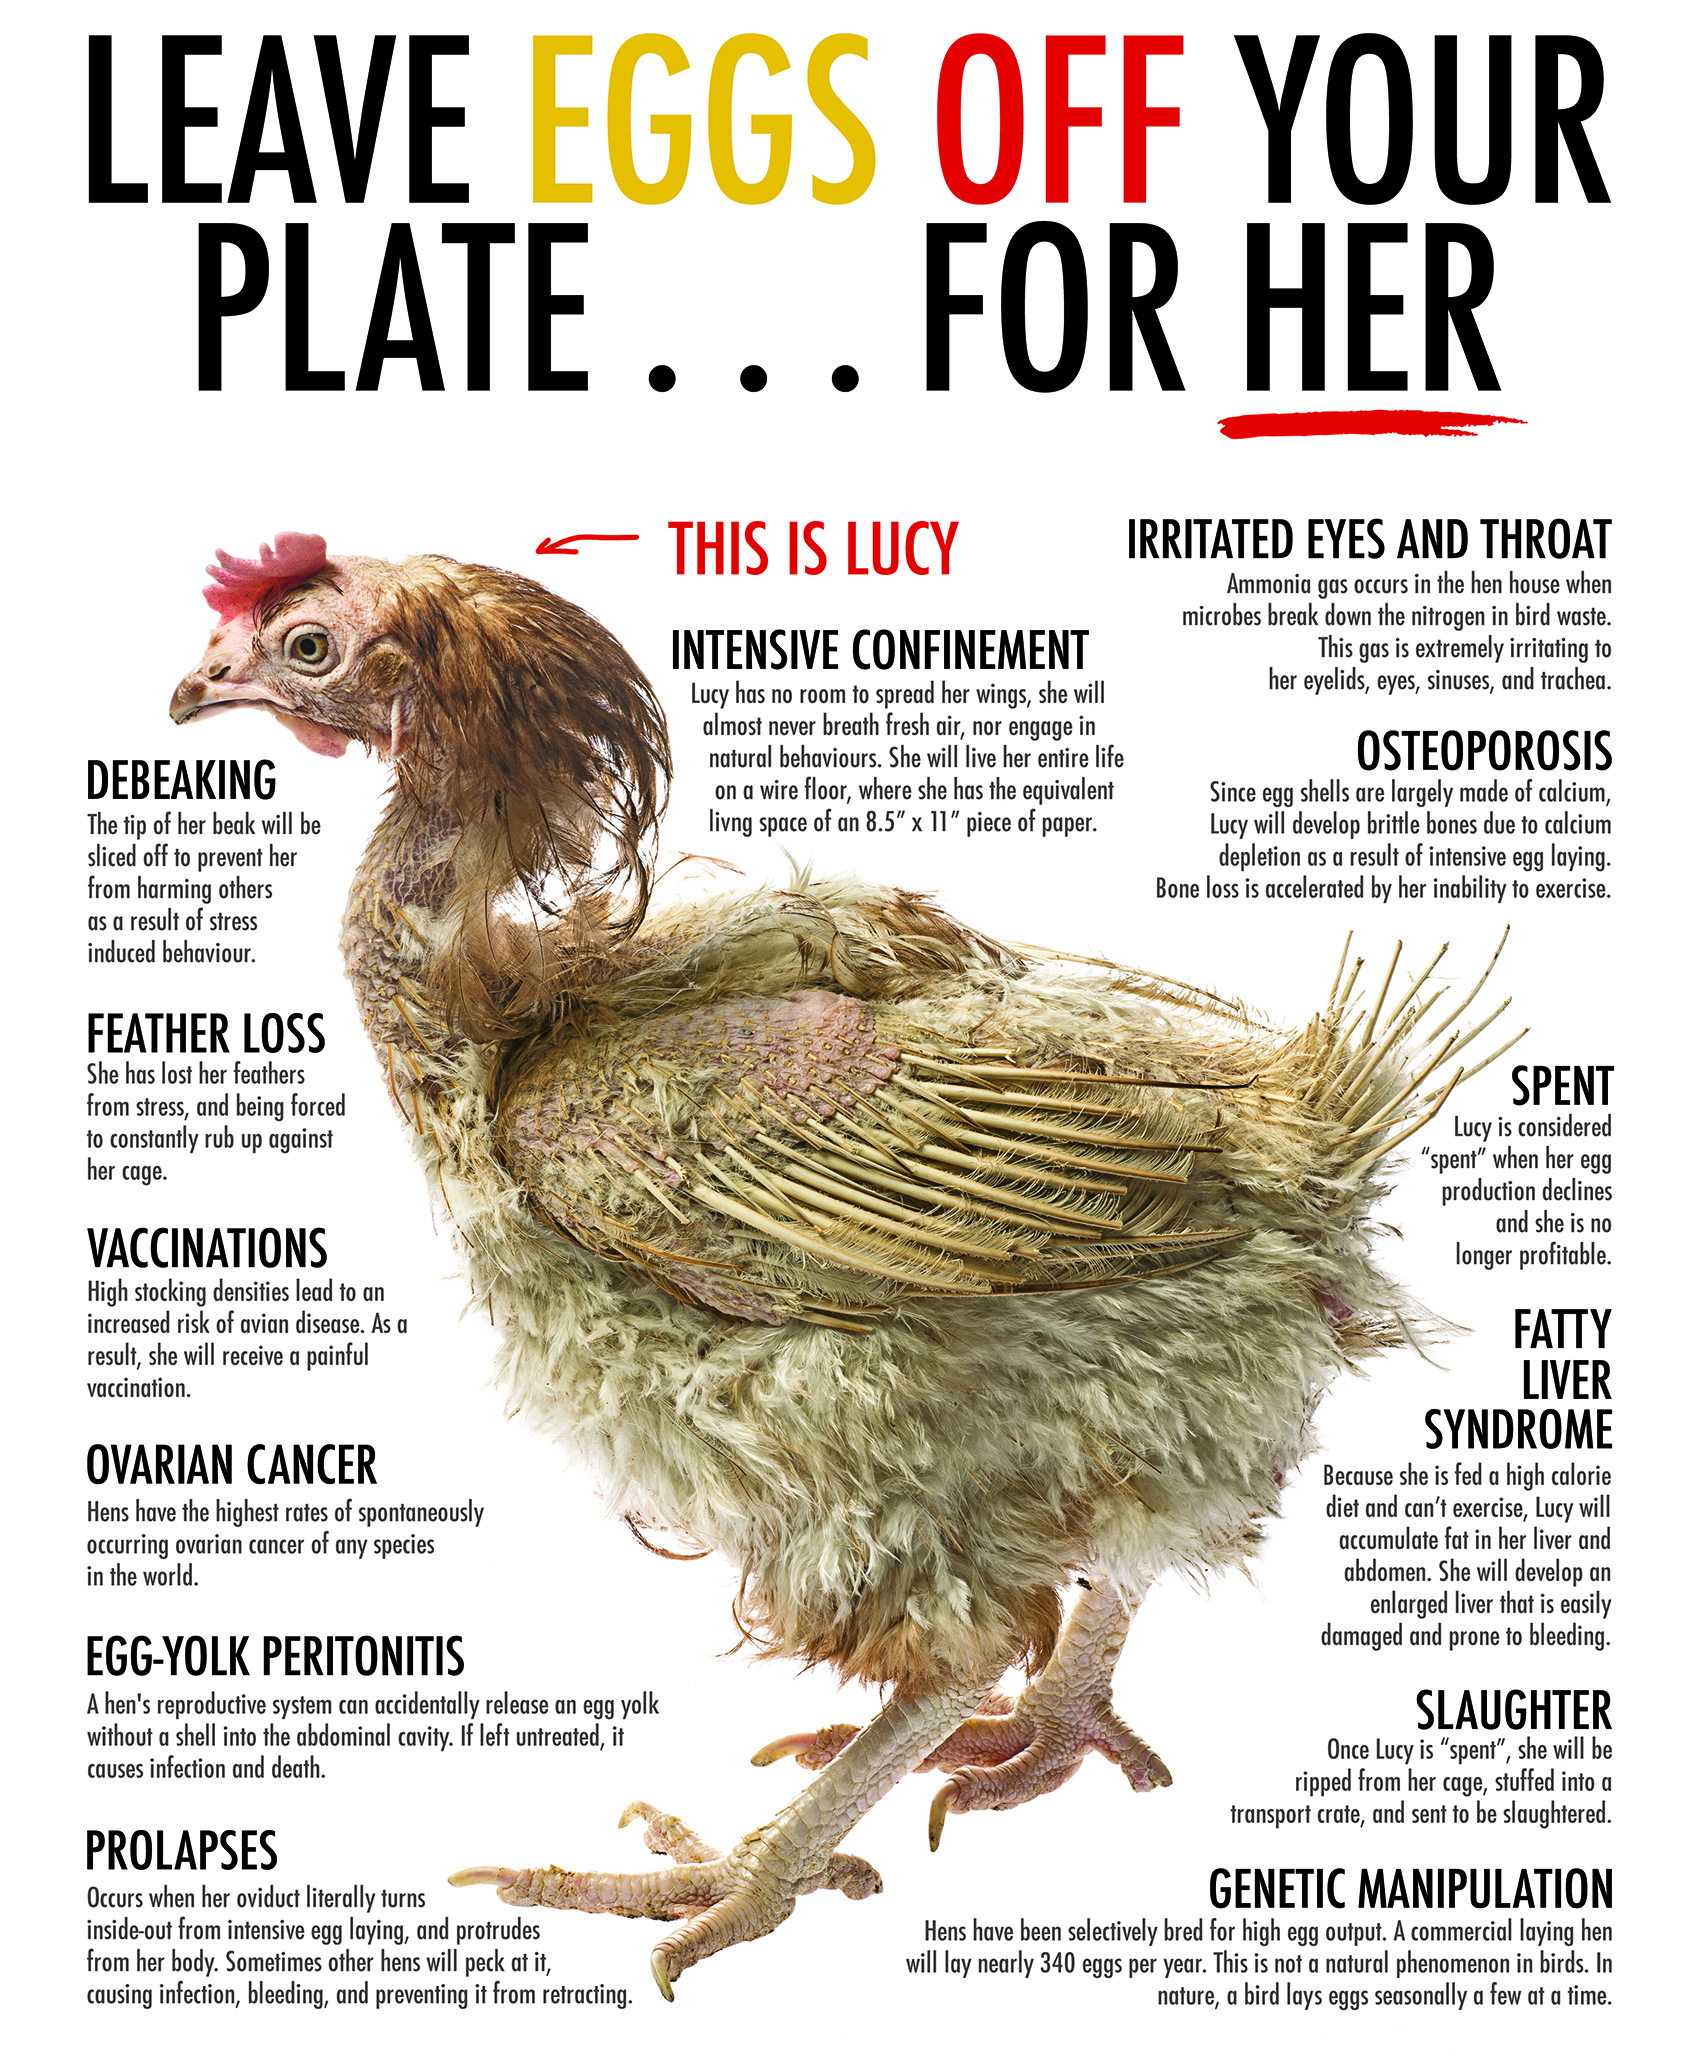 Surrounding Lucy in the picture above are descriptions of all the illnesses and conditions endured by hens on egg laying farms. Life for Lucy and all her cage mates has been one of deprivation and misery.